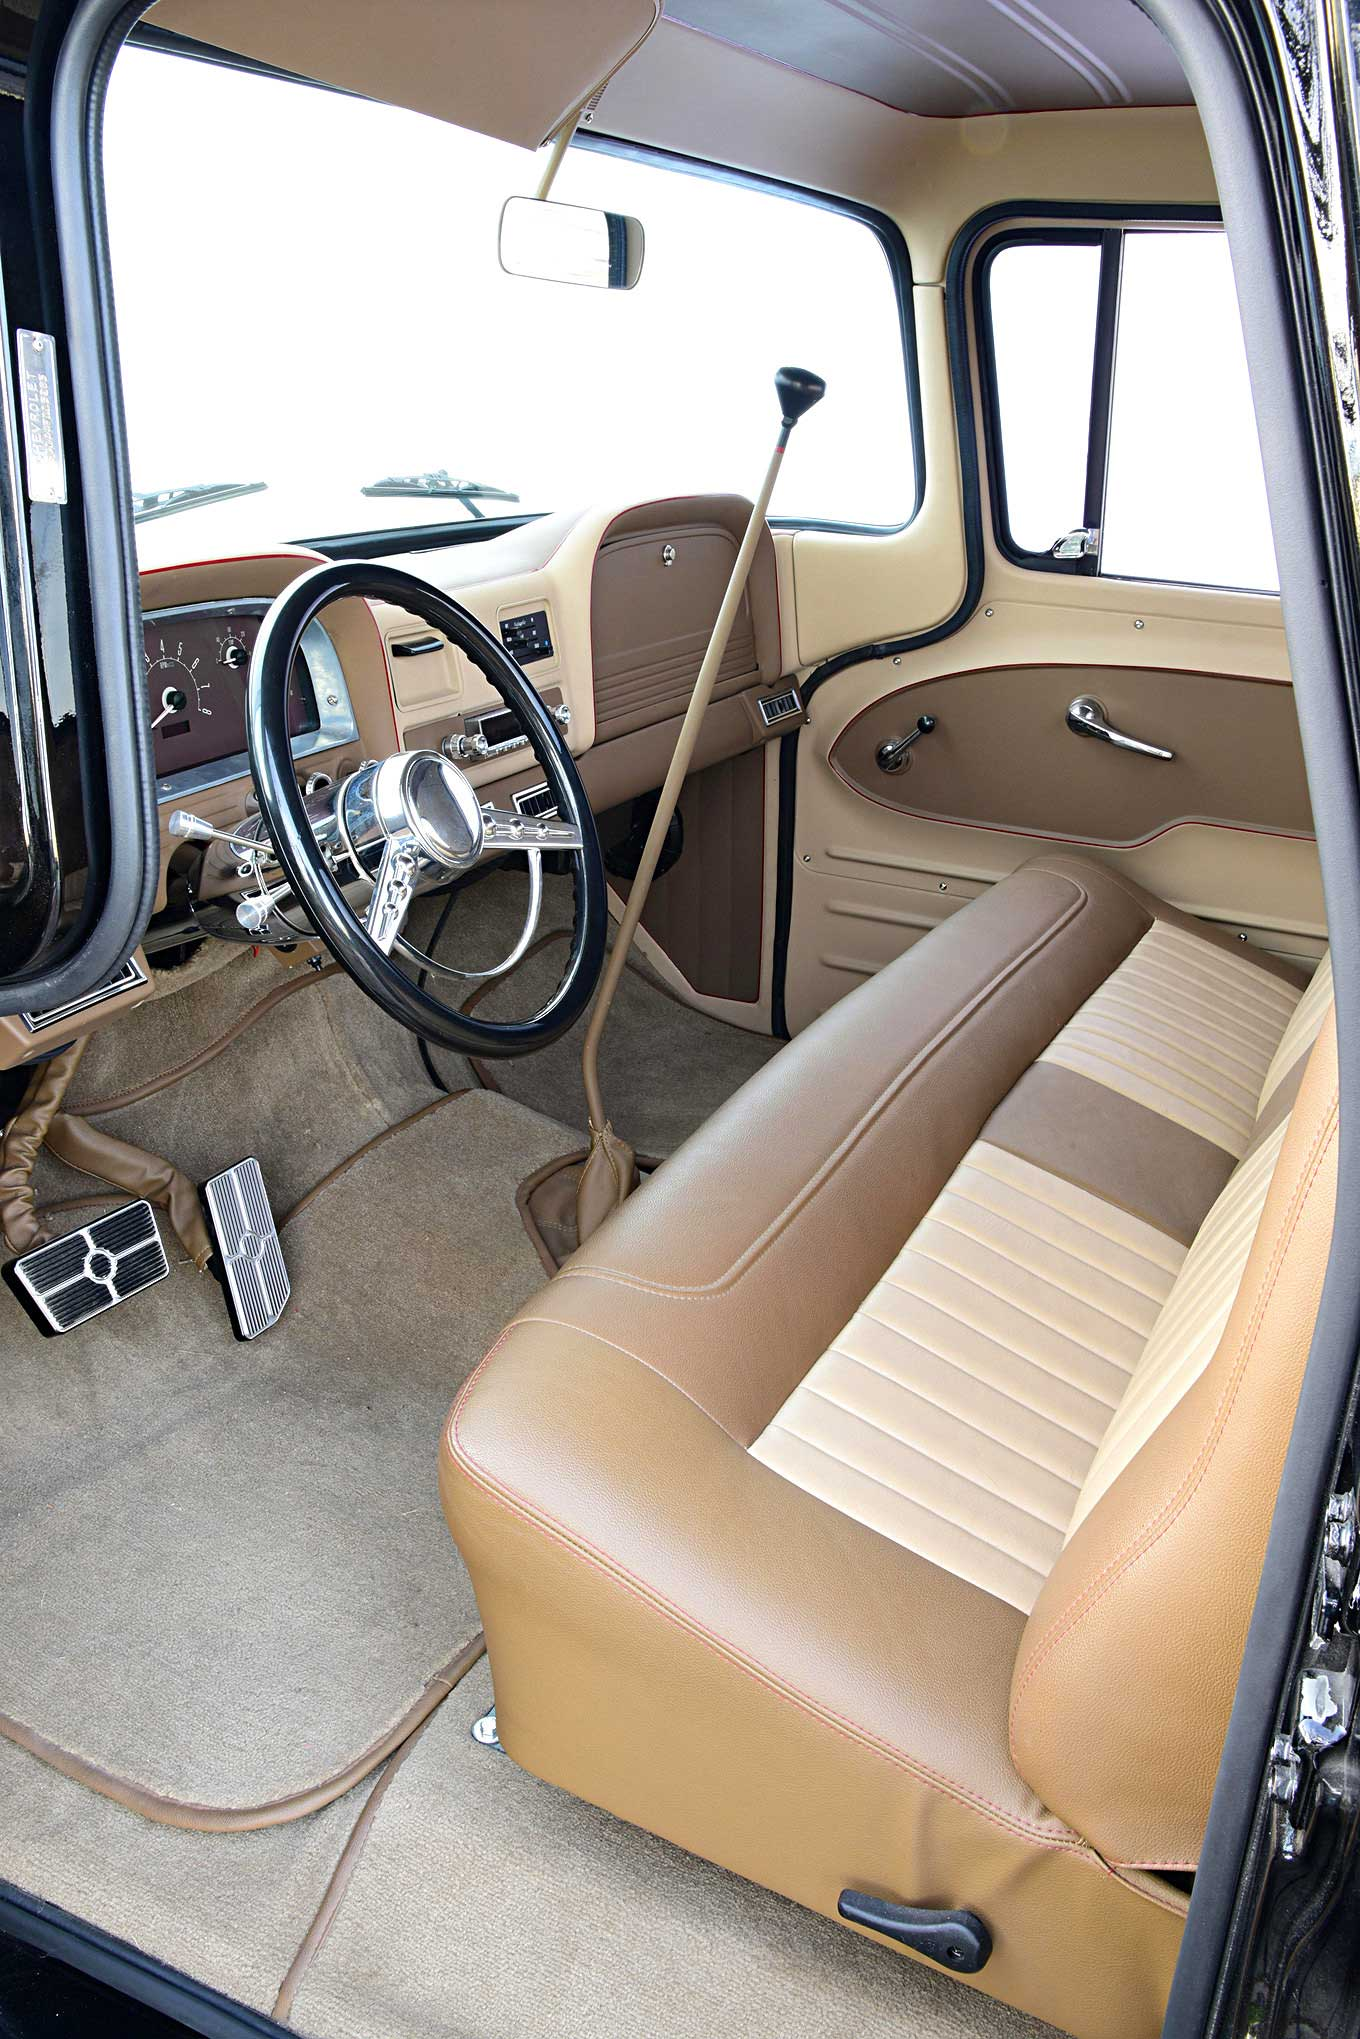 1963 Chevy C10 Interior - Lowrider